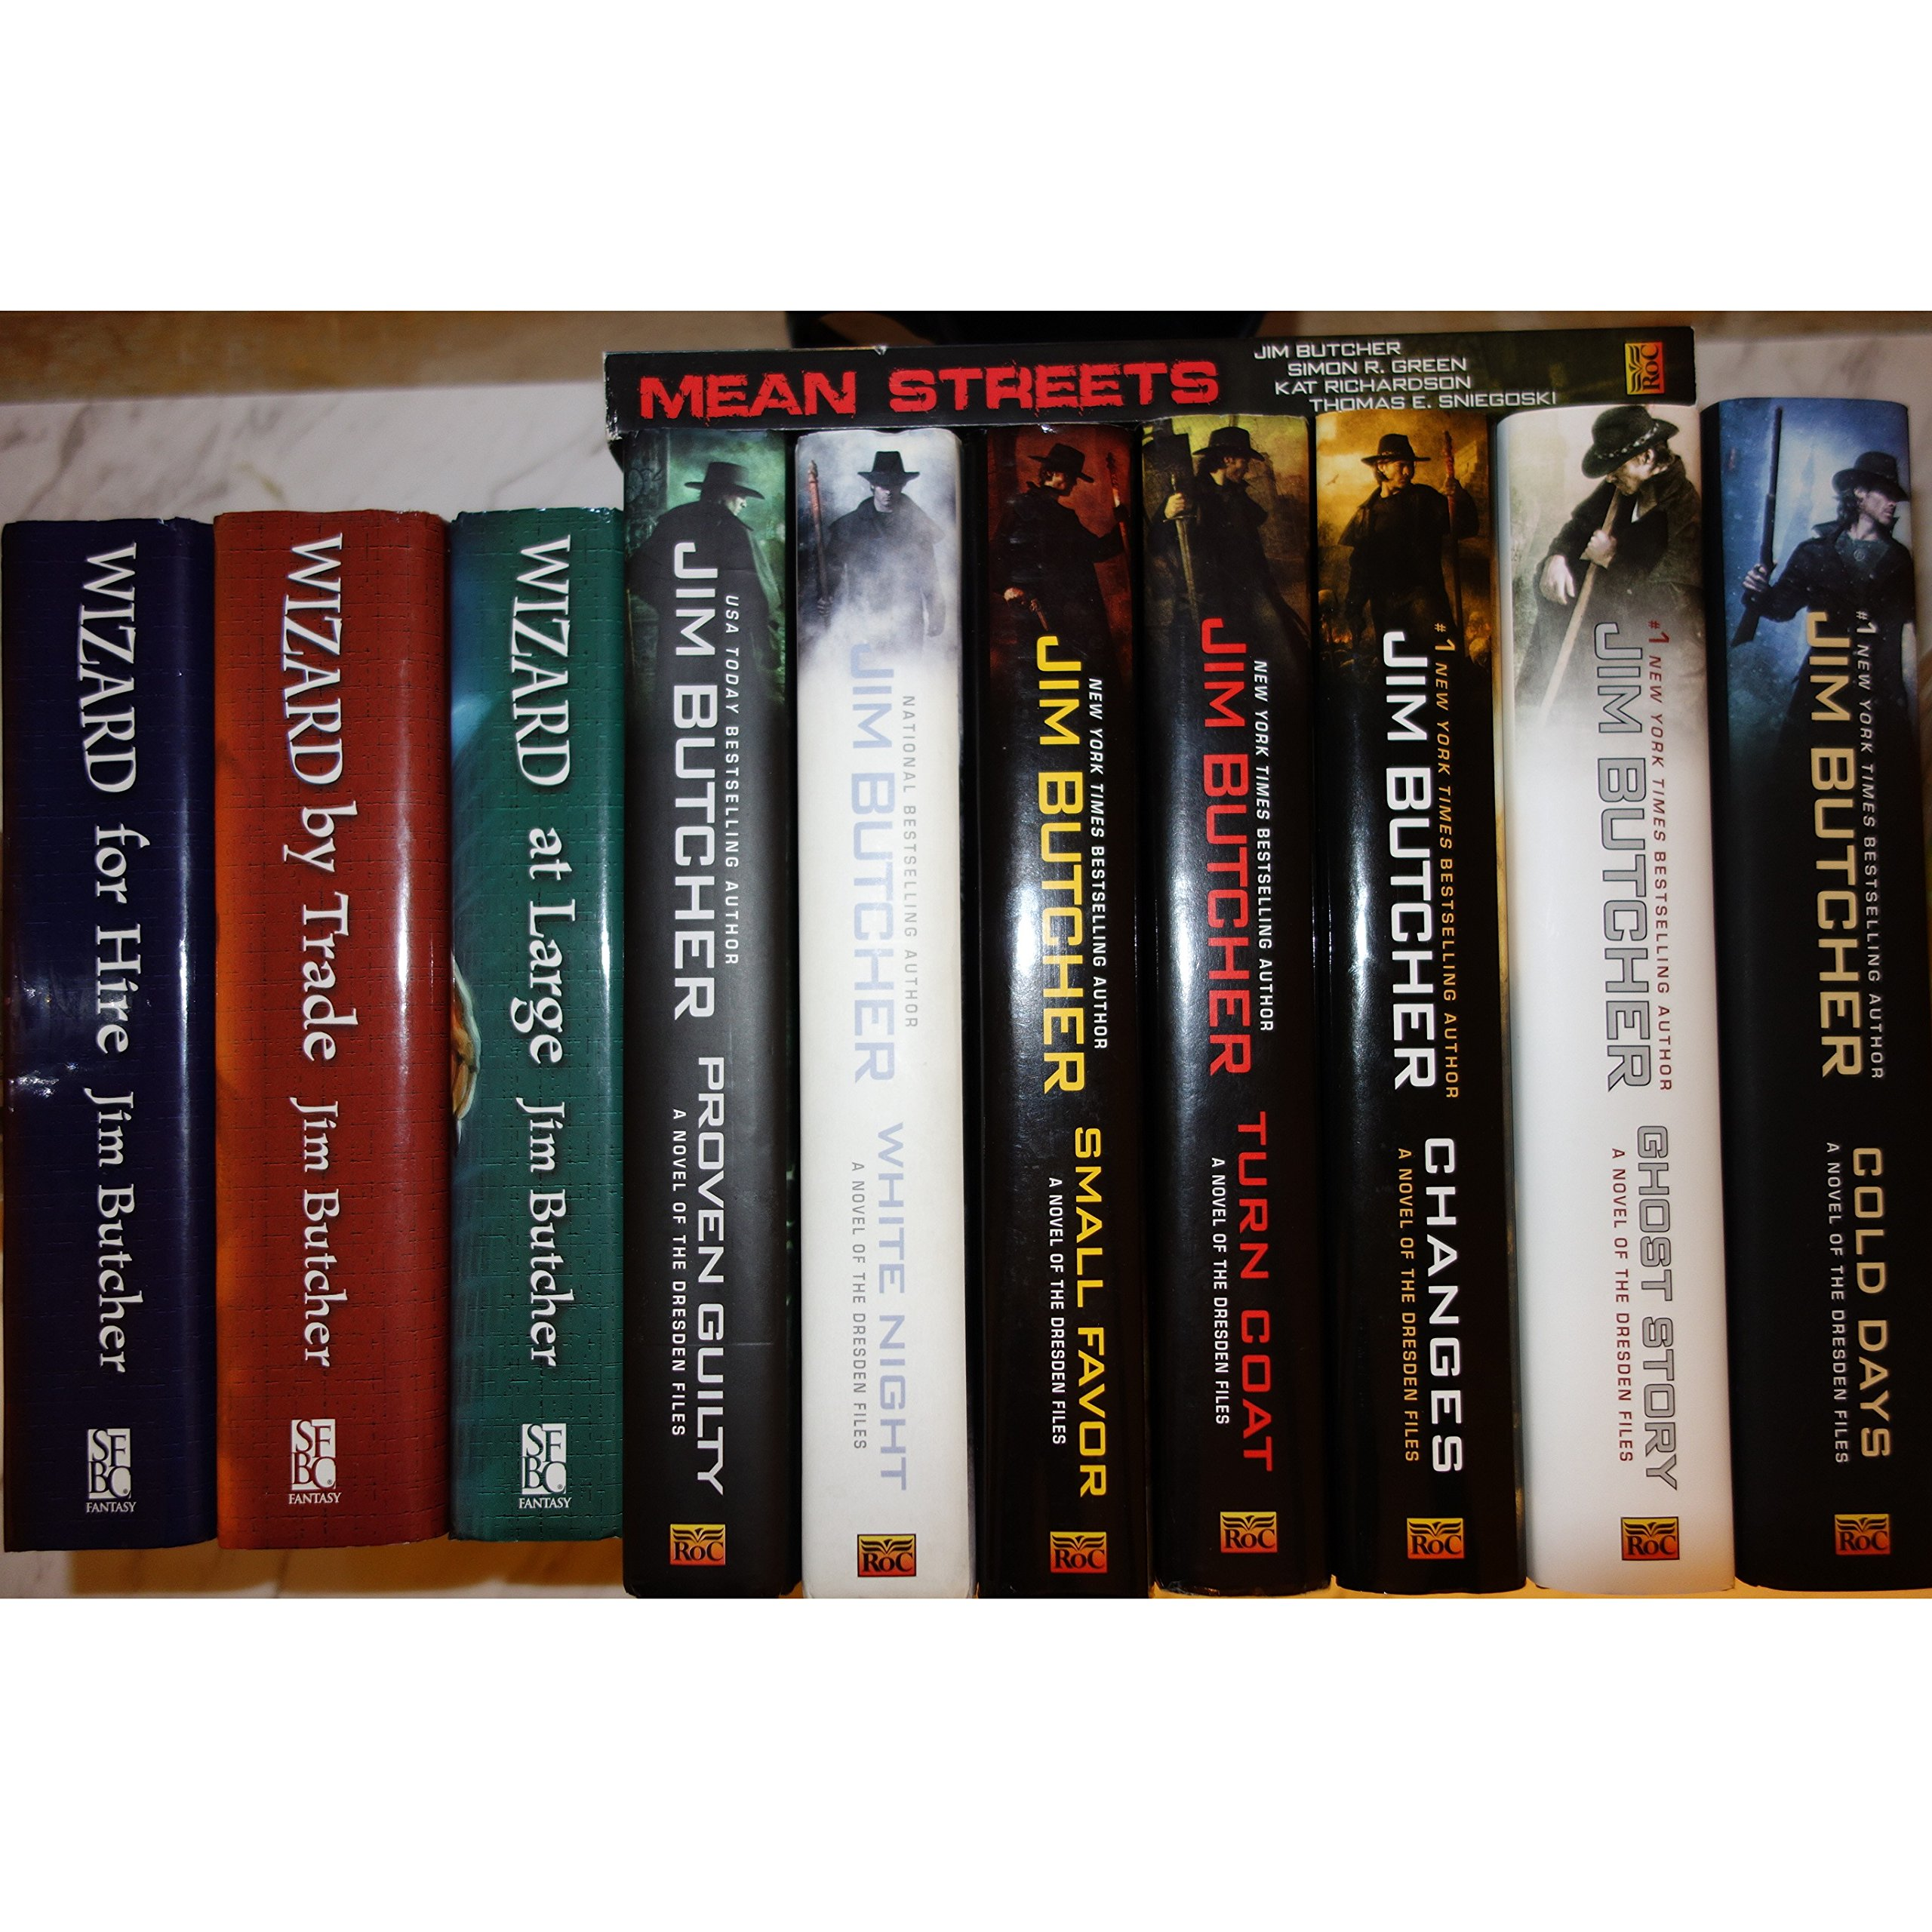 Dresden Files (wizard For Hire (3 In 1), Wizard By Trade (2 In 1), Wizard  At Large (2 In 1), Wizard Under Fire (2 In 1), Small Favor, Turn Coat,  Changes,